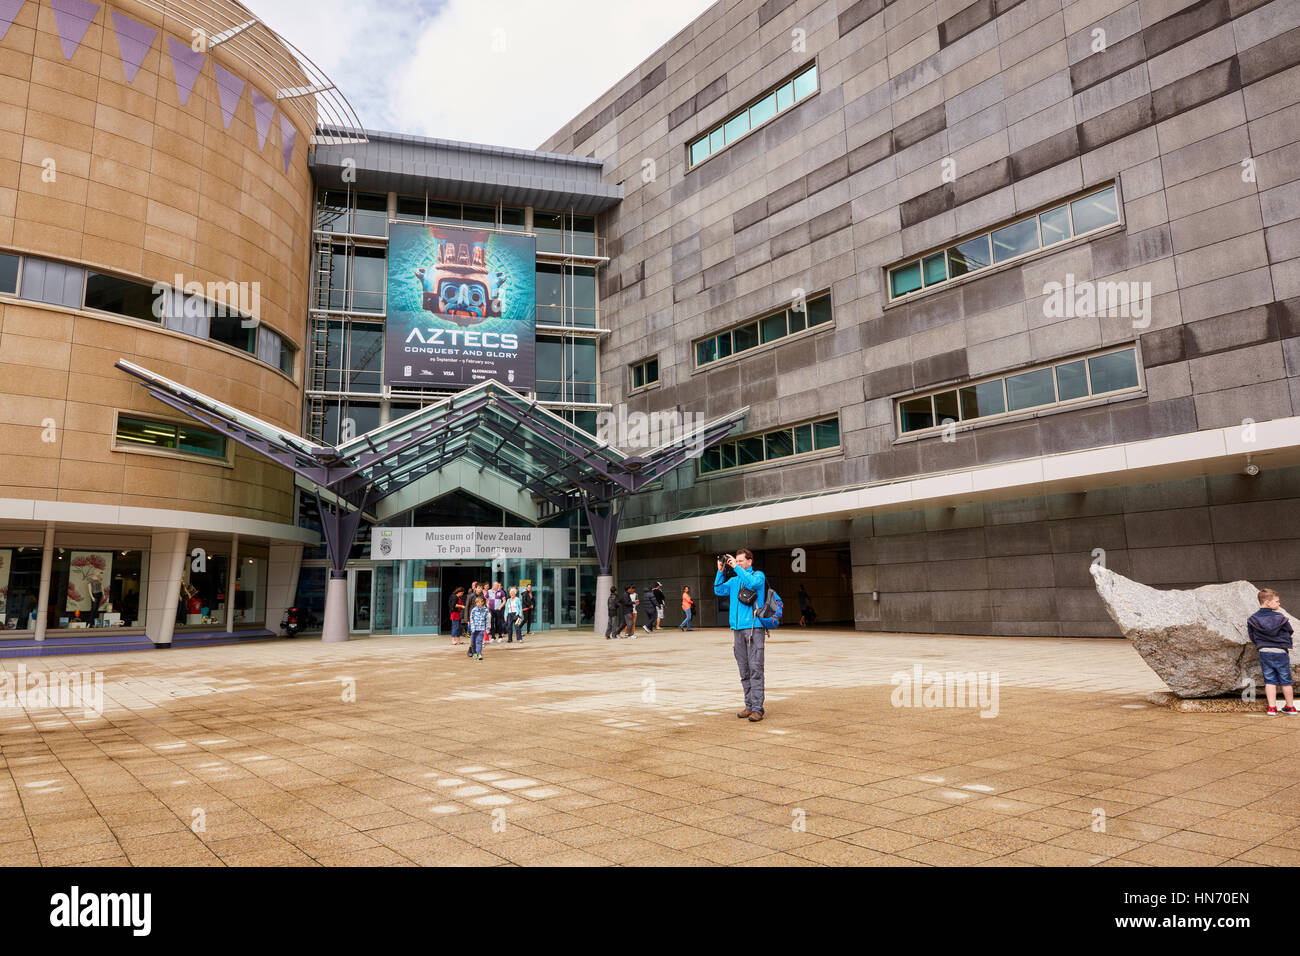 Le Musée Te Papa Tongarewa, Wellington, Nouvelle-Zélande Photo Stock